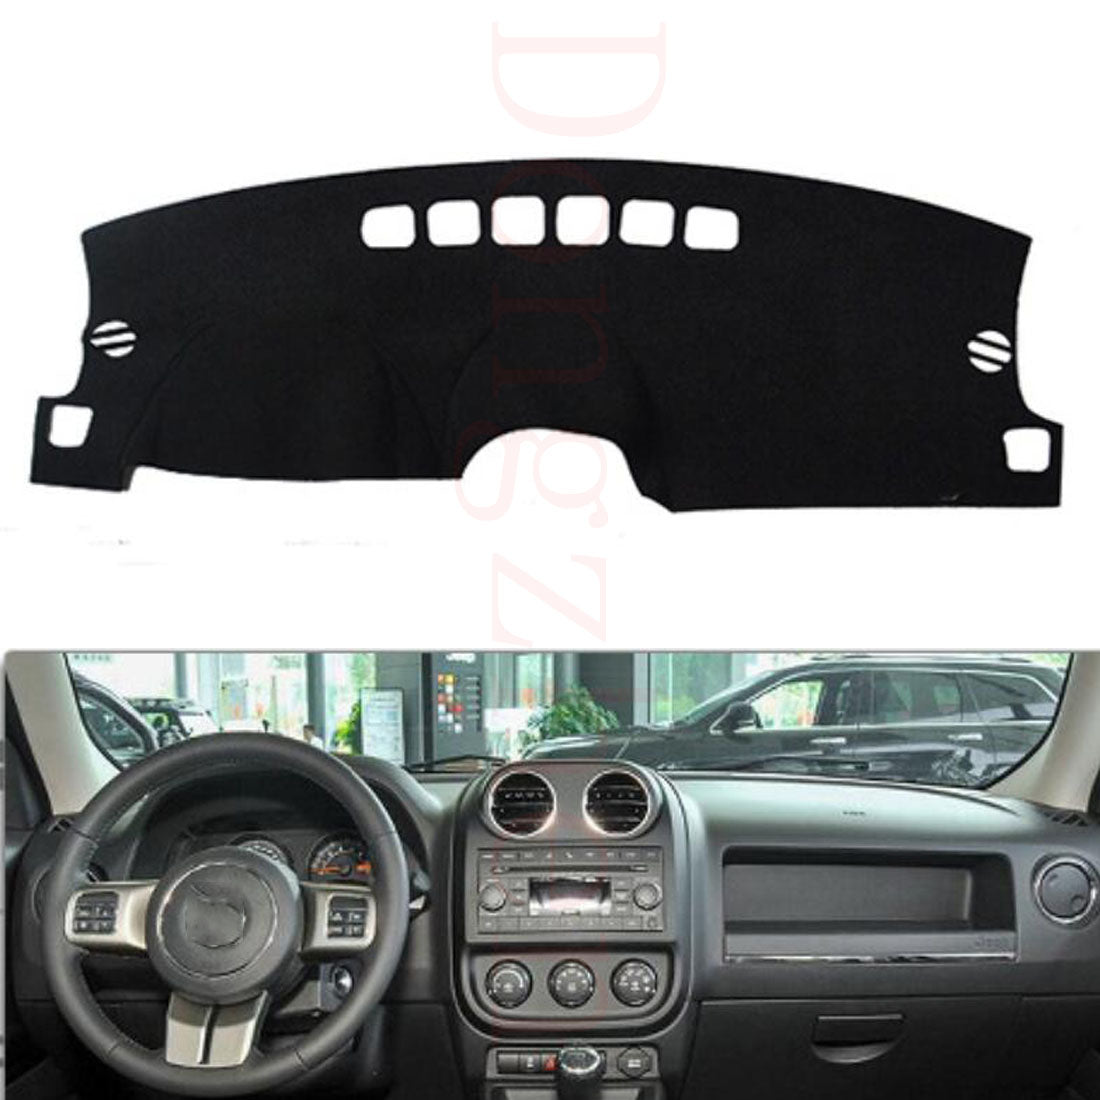 Dashboard Cover For Jeep Compass Patriot 2010-2015,  - Any Car Accessories